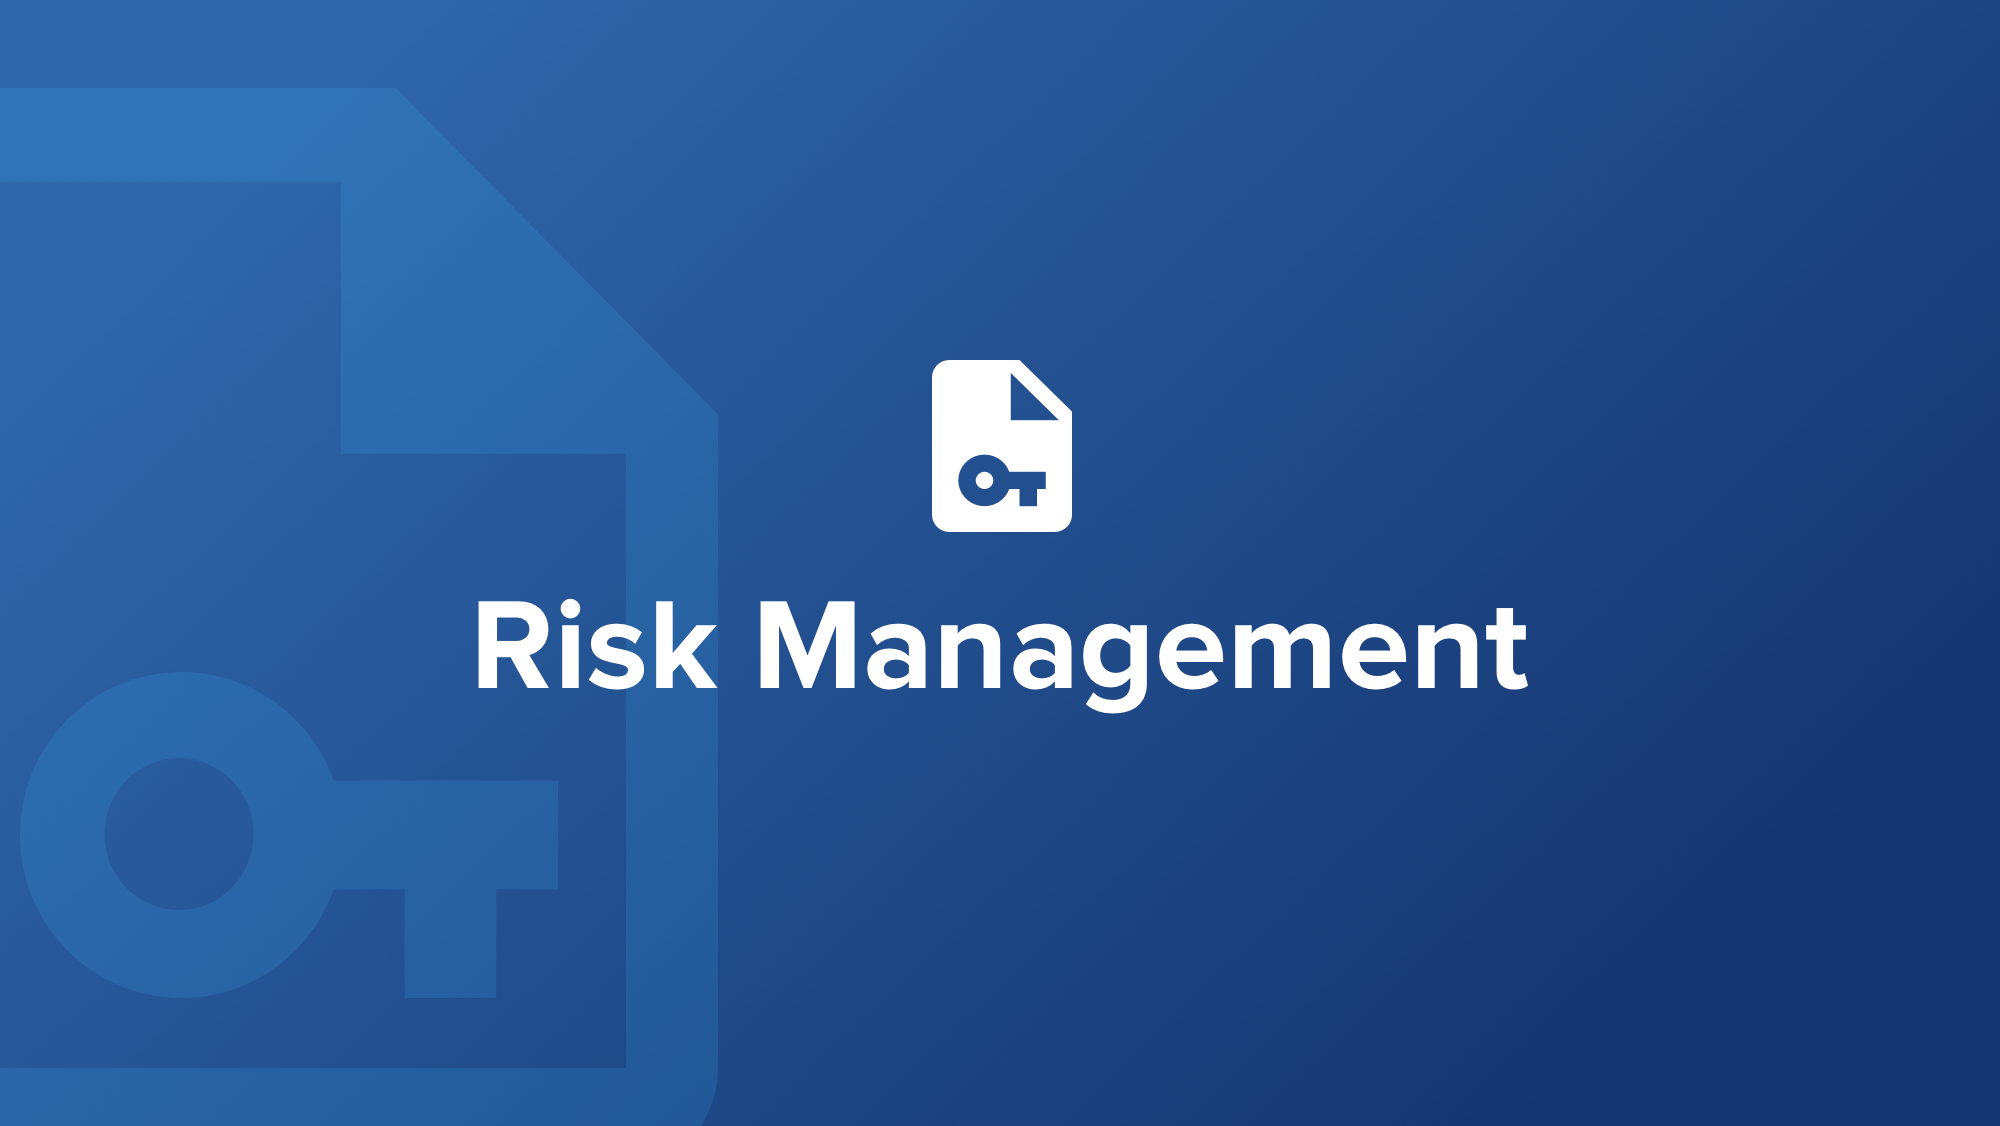 Ostendio looks at risk management by describing three trends for safely managing security and risk in 2021.